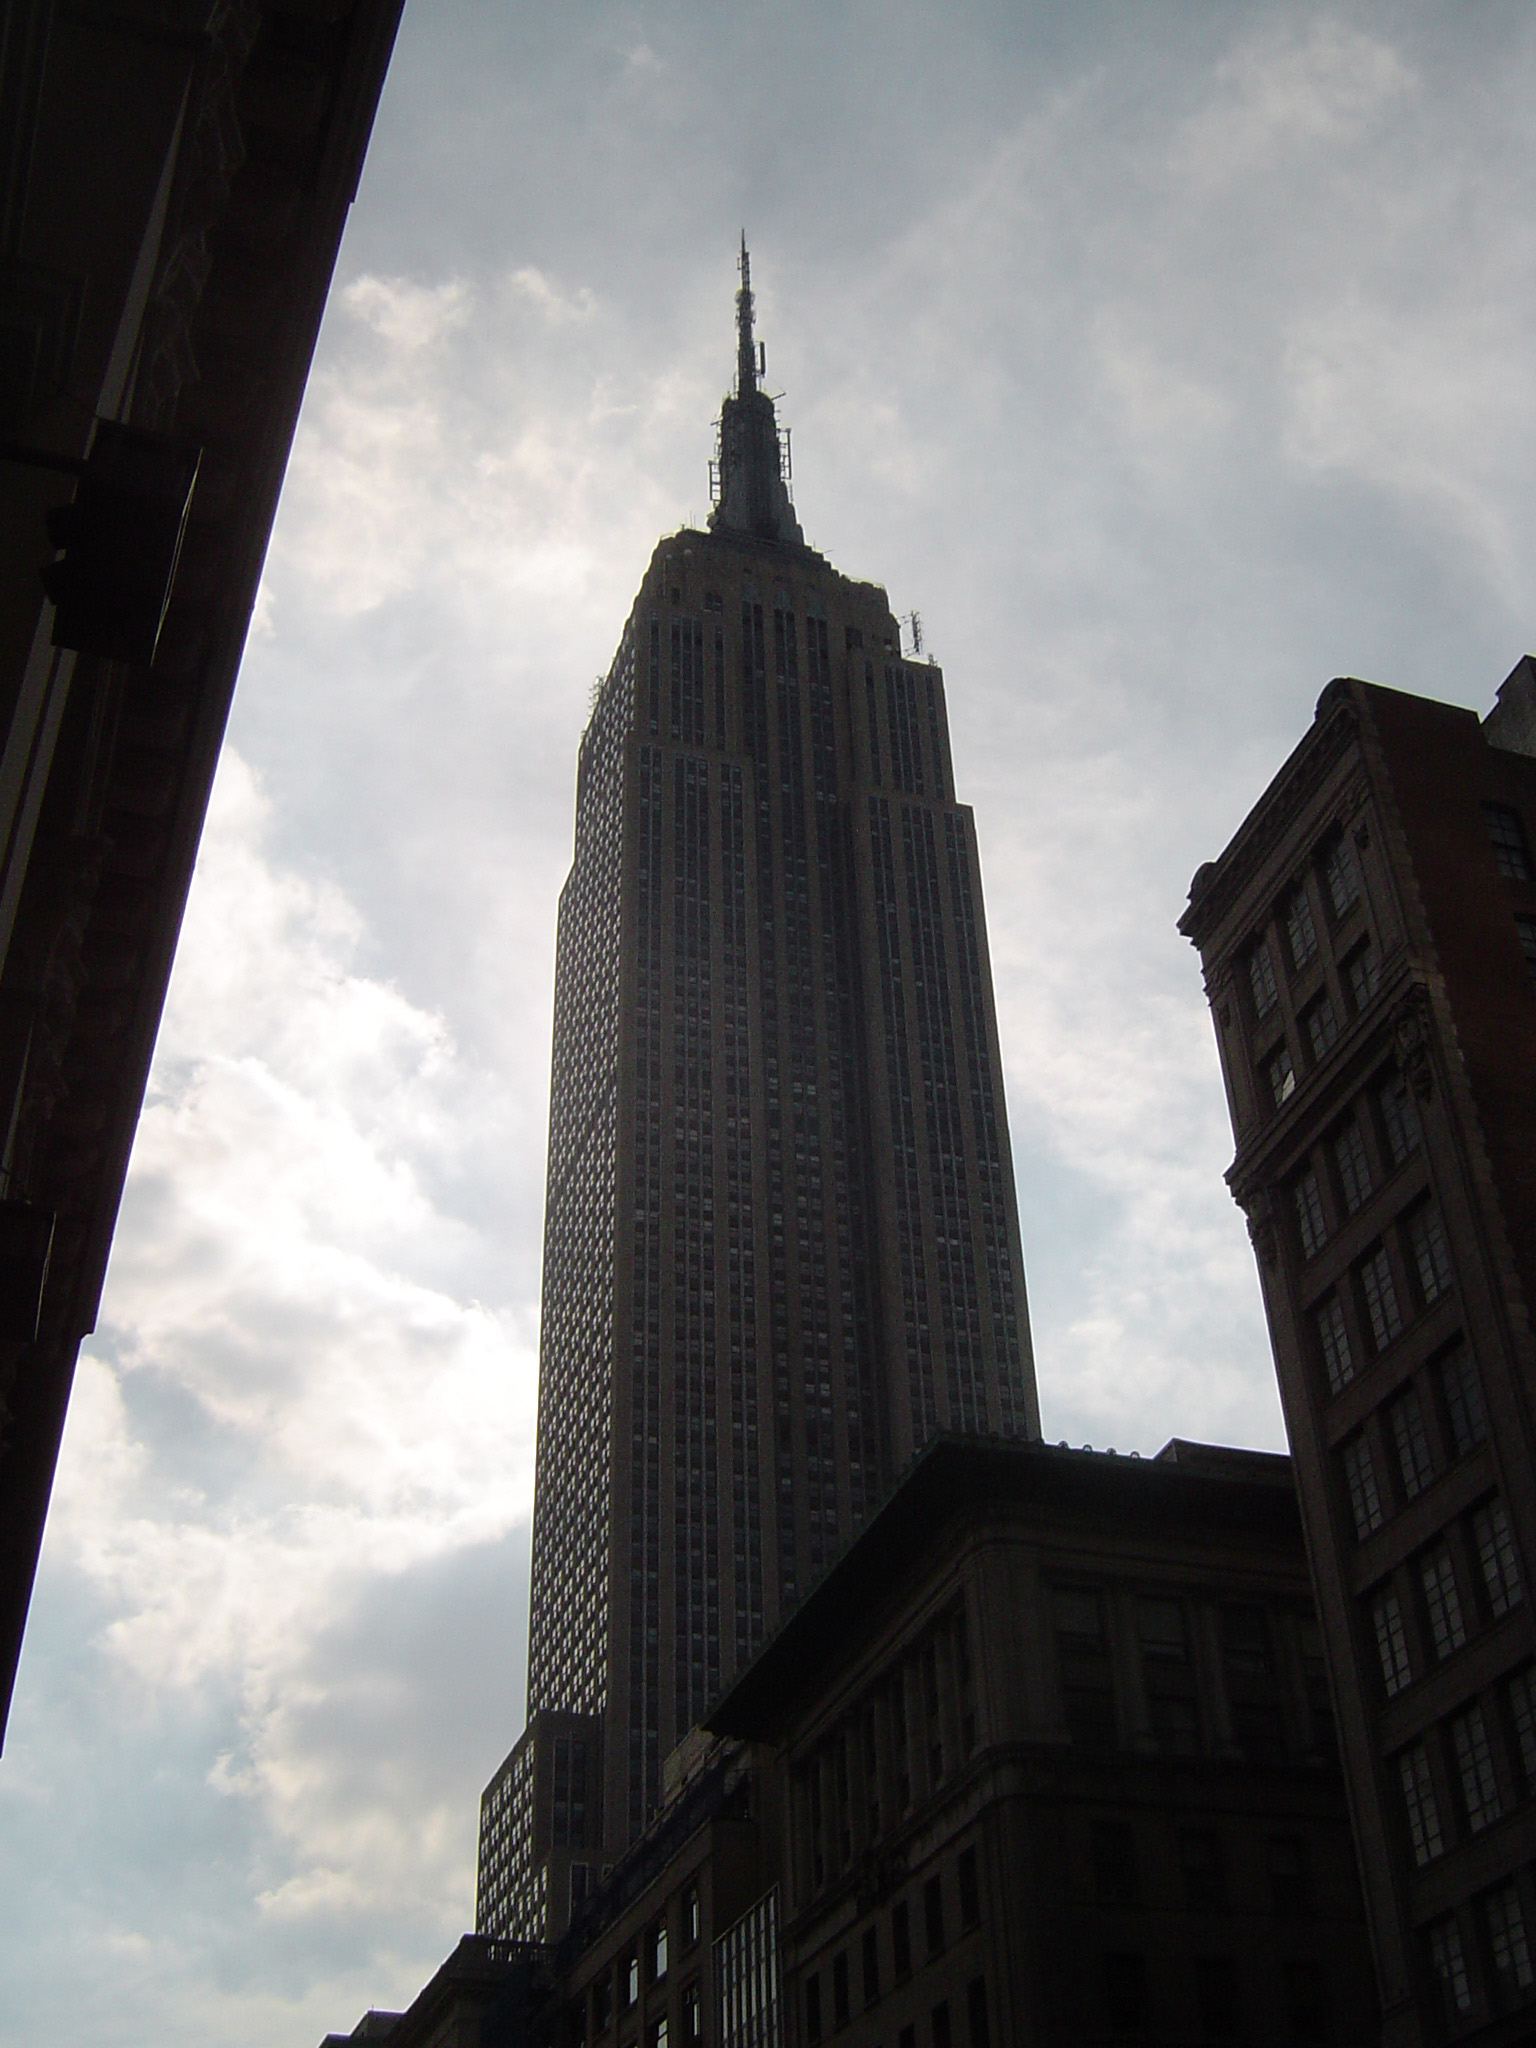 Low angle view looking up of the Empire State Building, Manhattan, New York, silhouetted against a cloudy sky